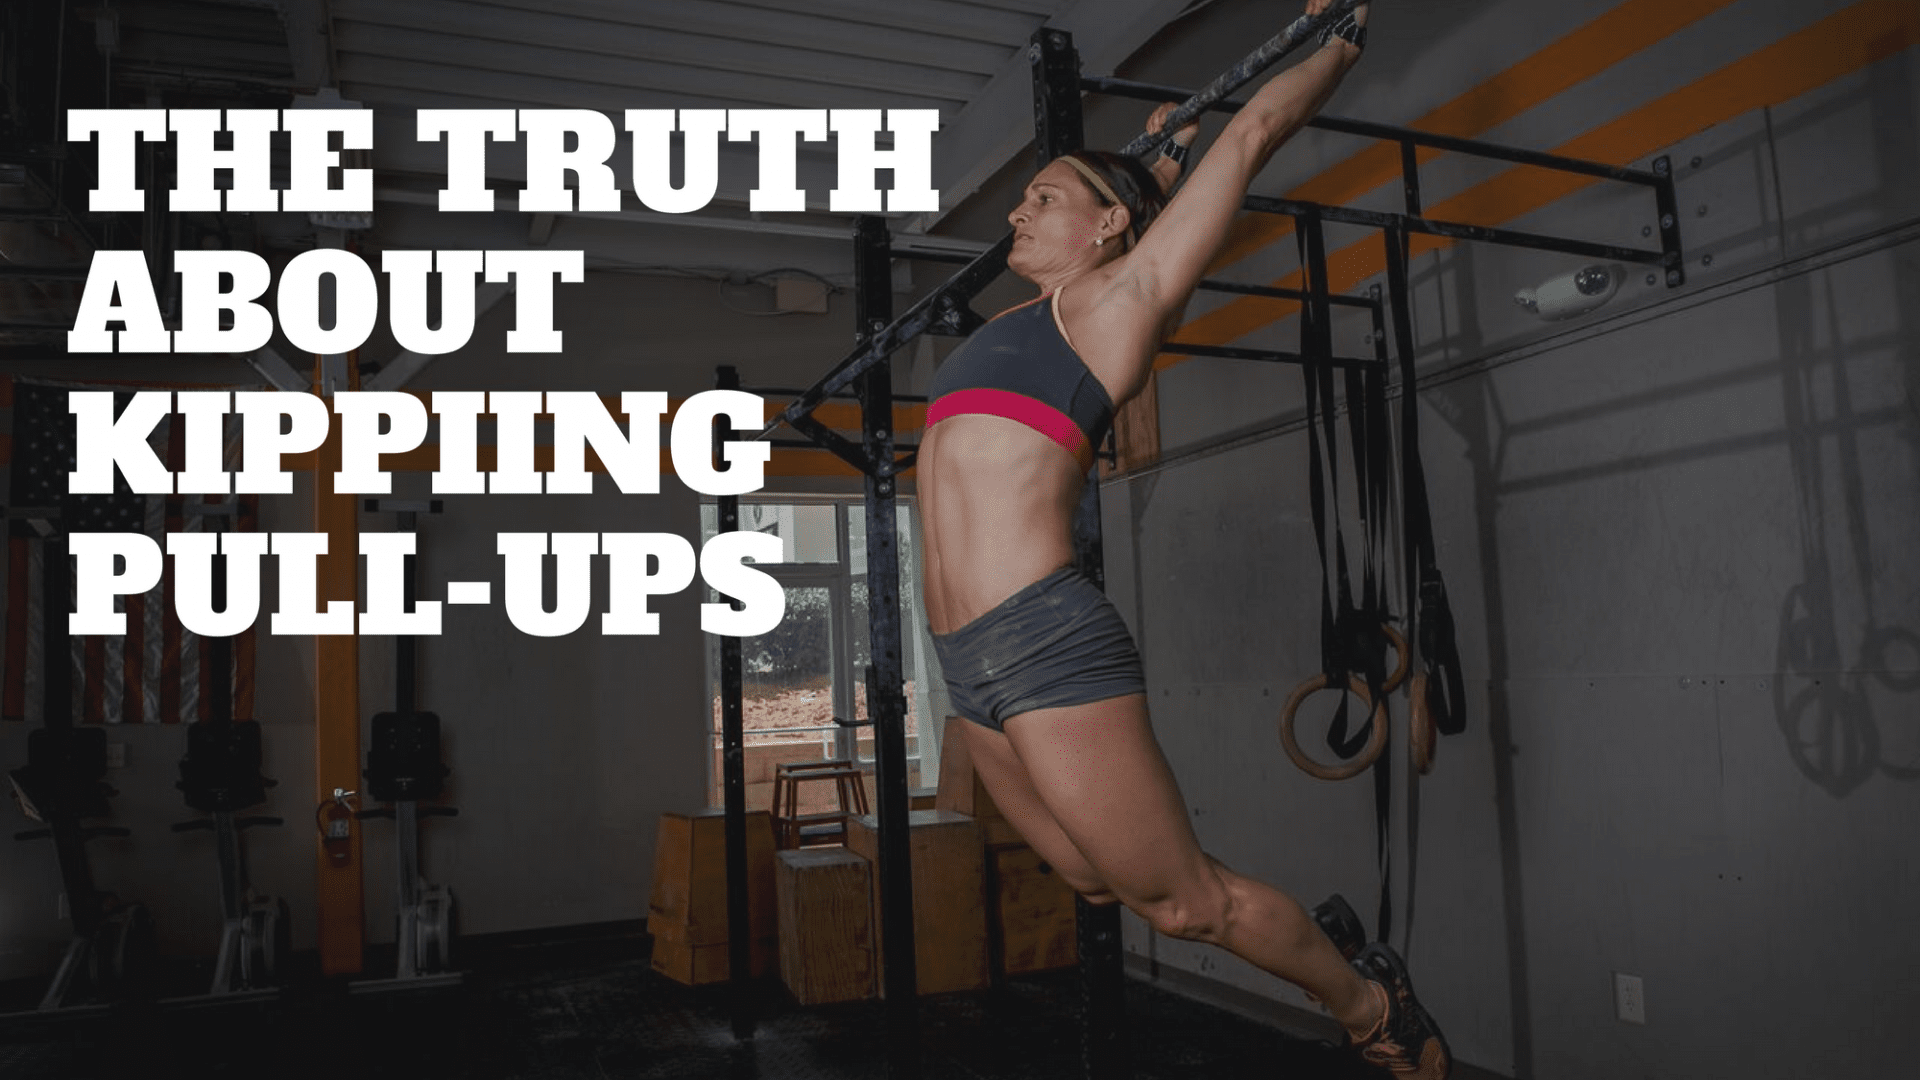 The Truth About Kipping Pullups